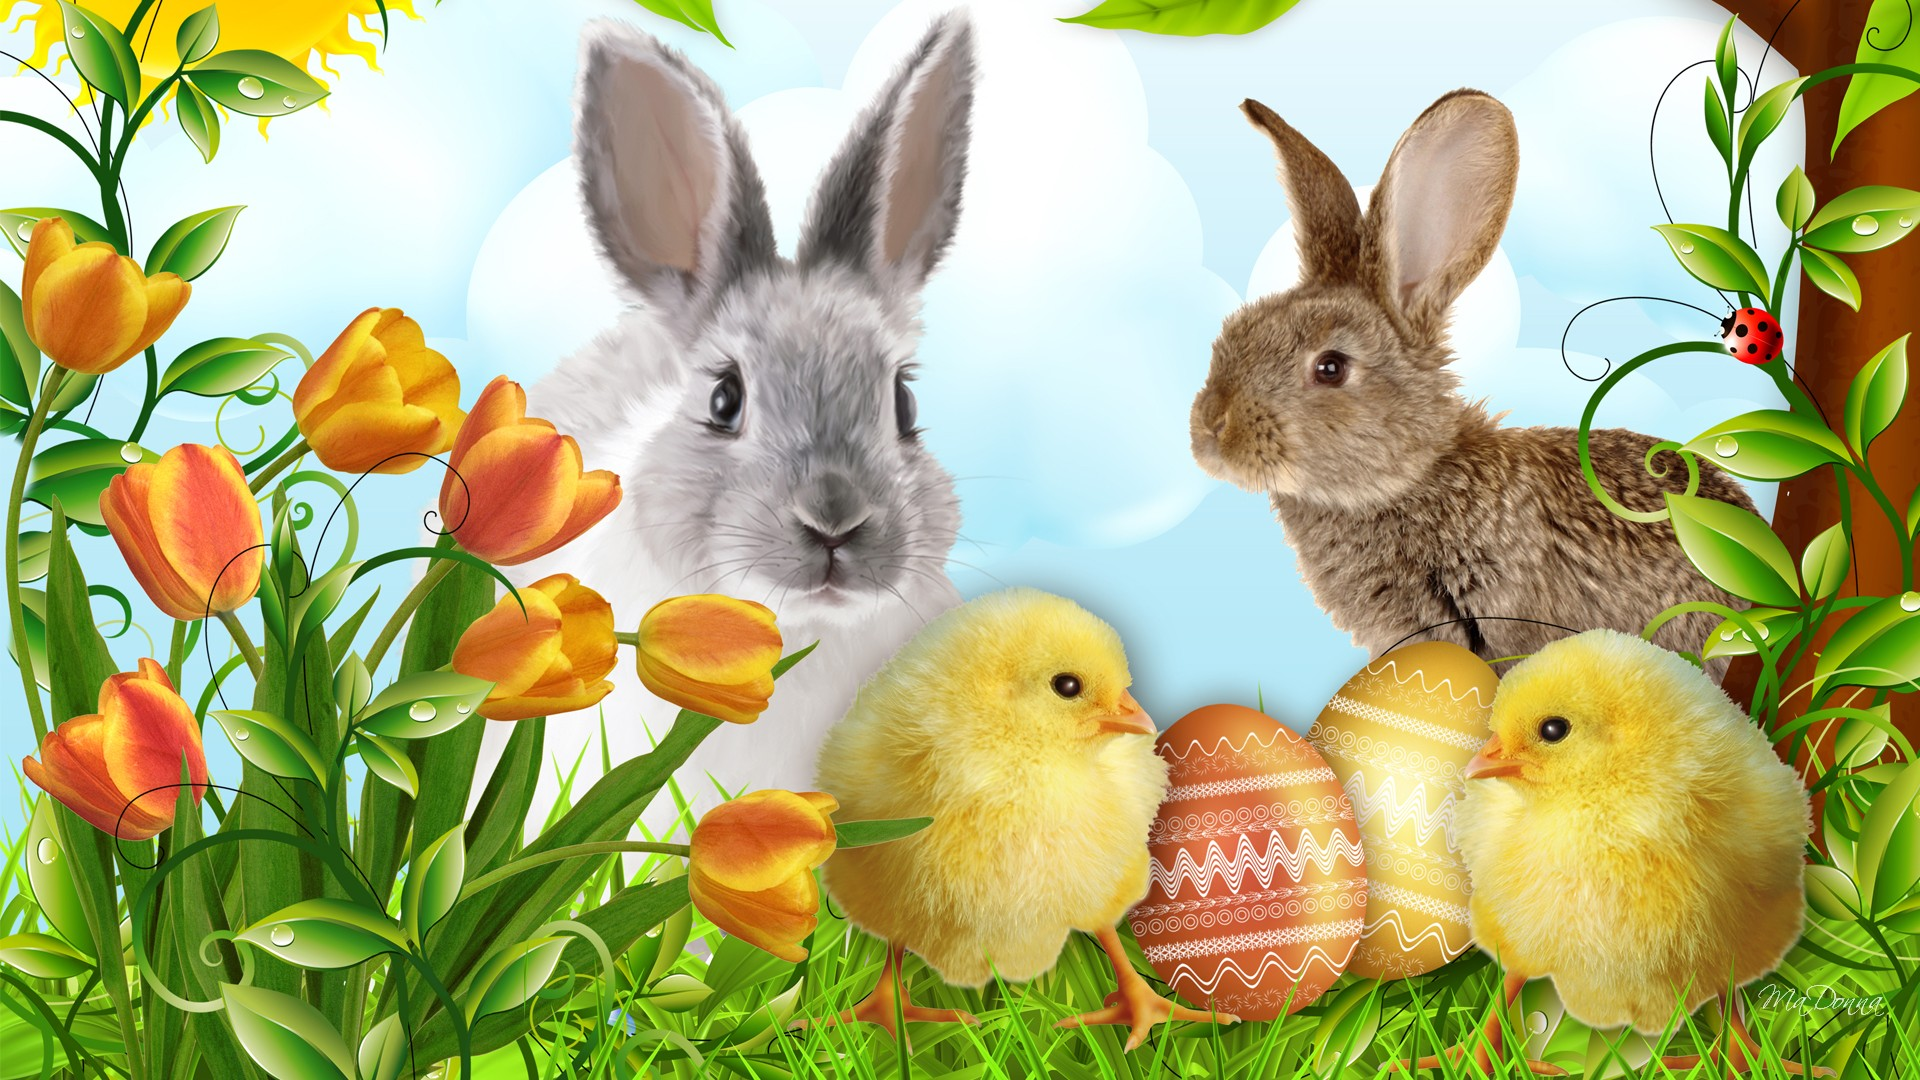 Happy Easter Desktop Wallpaper HD (10)